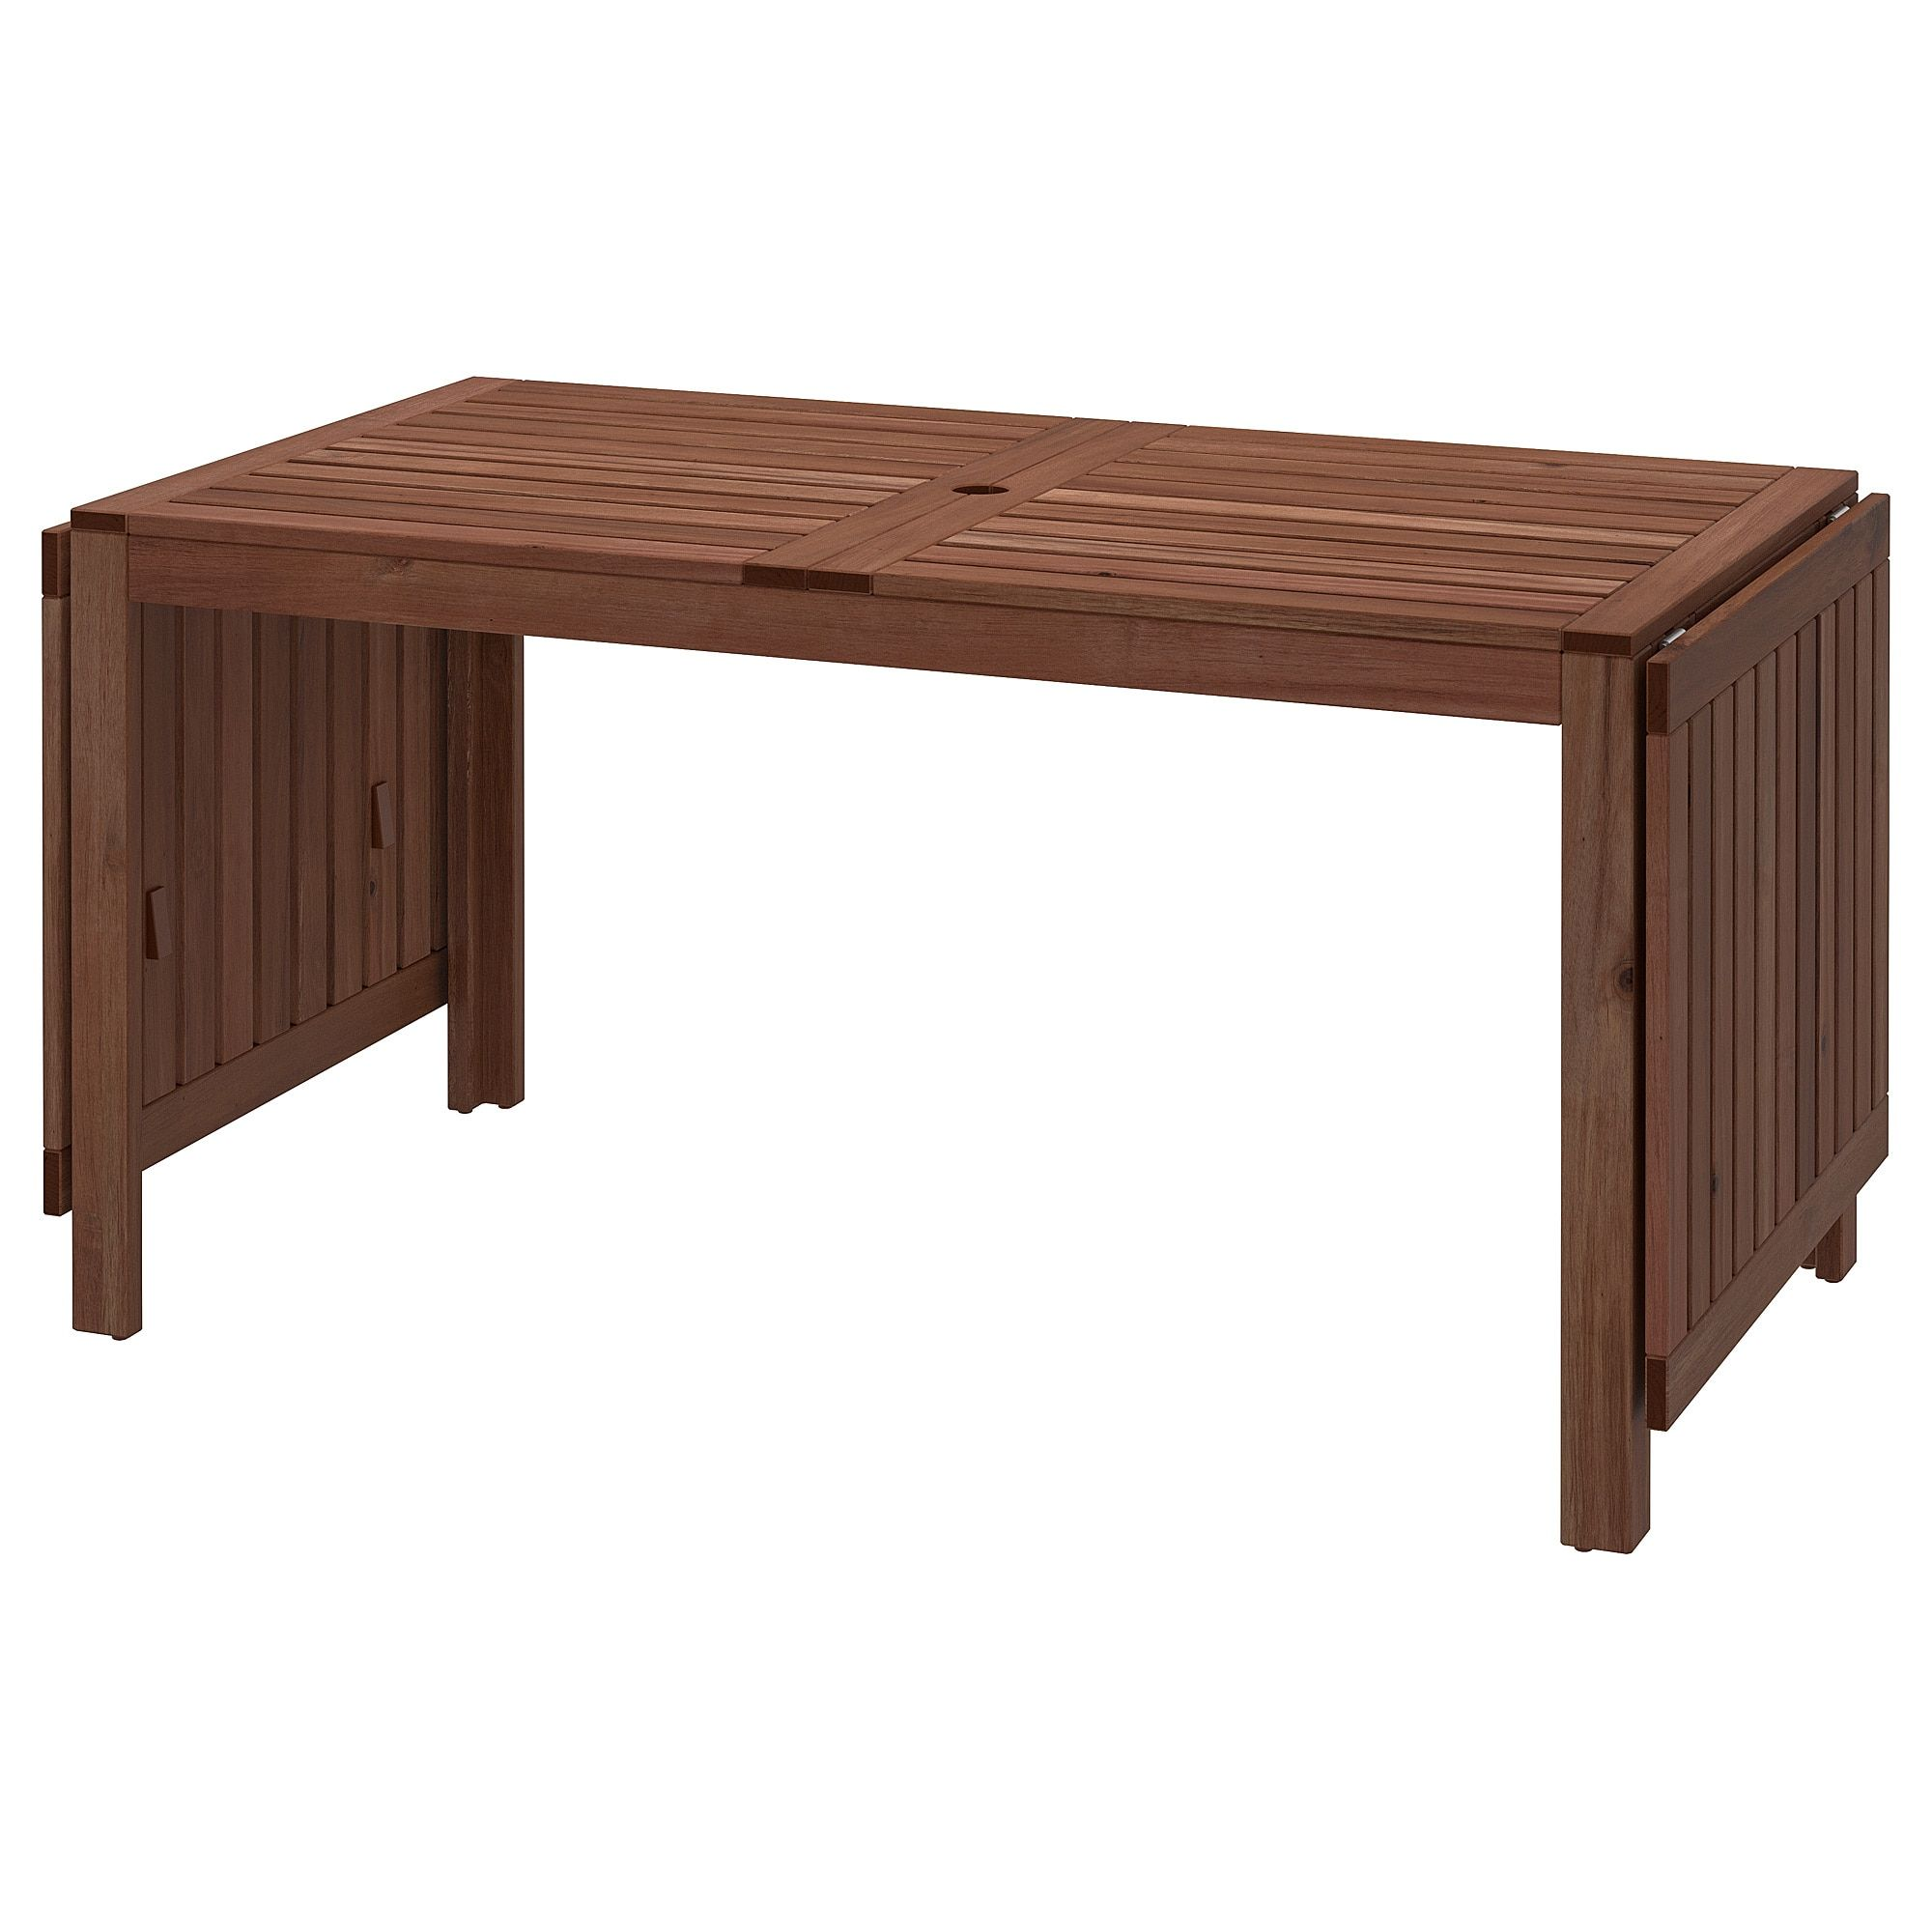 Applaro Drop Leaf Table Outdoor Brown Stained Brown 55 1 8 78 3